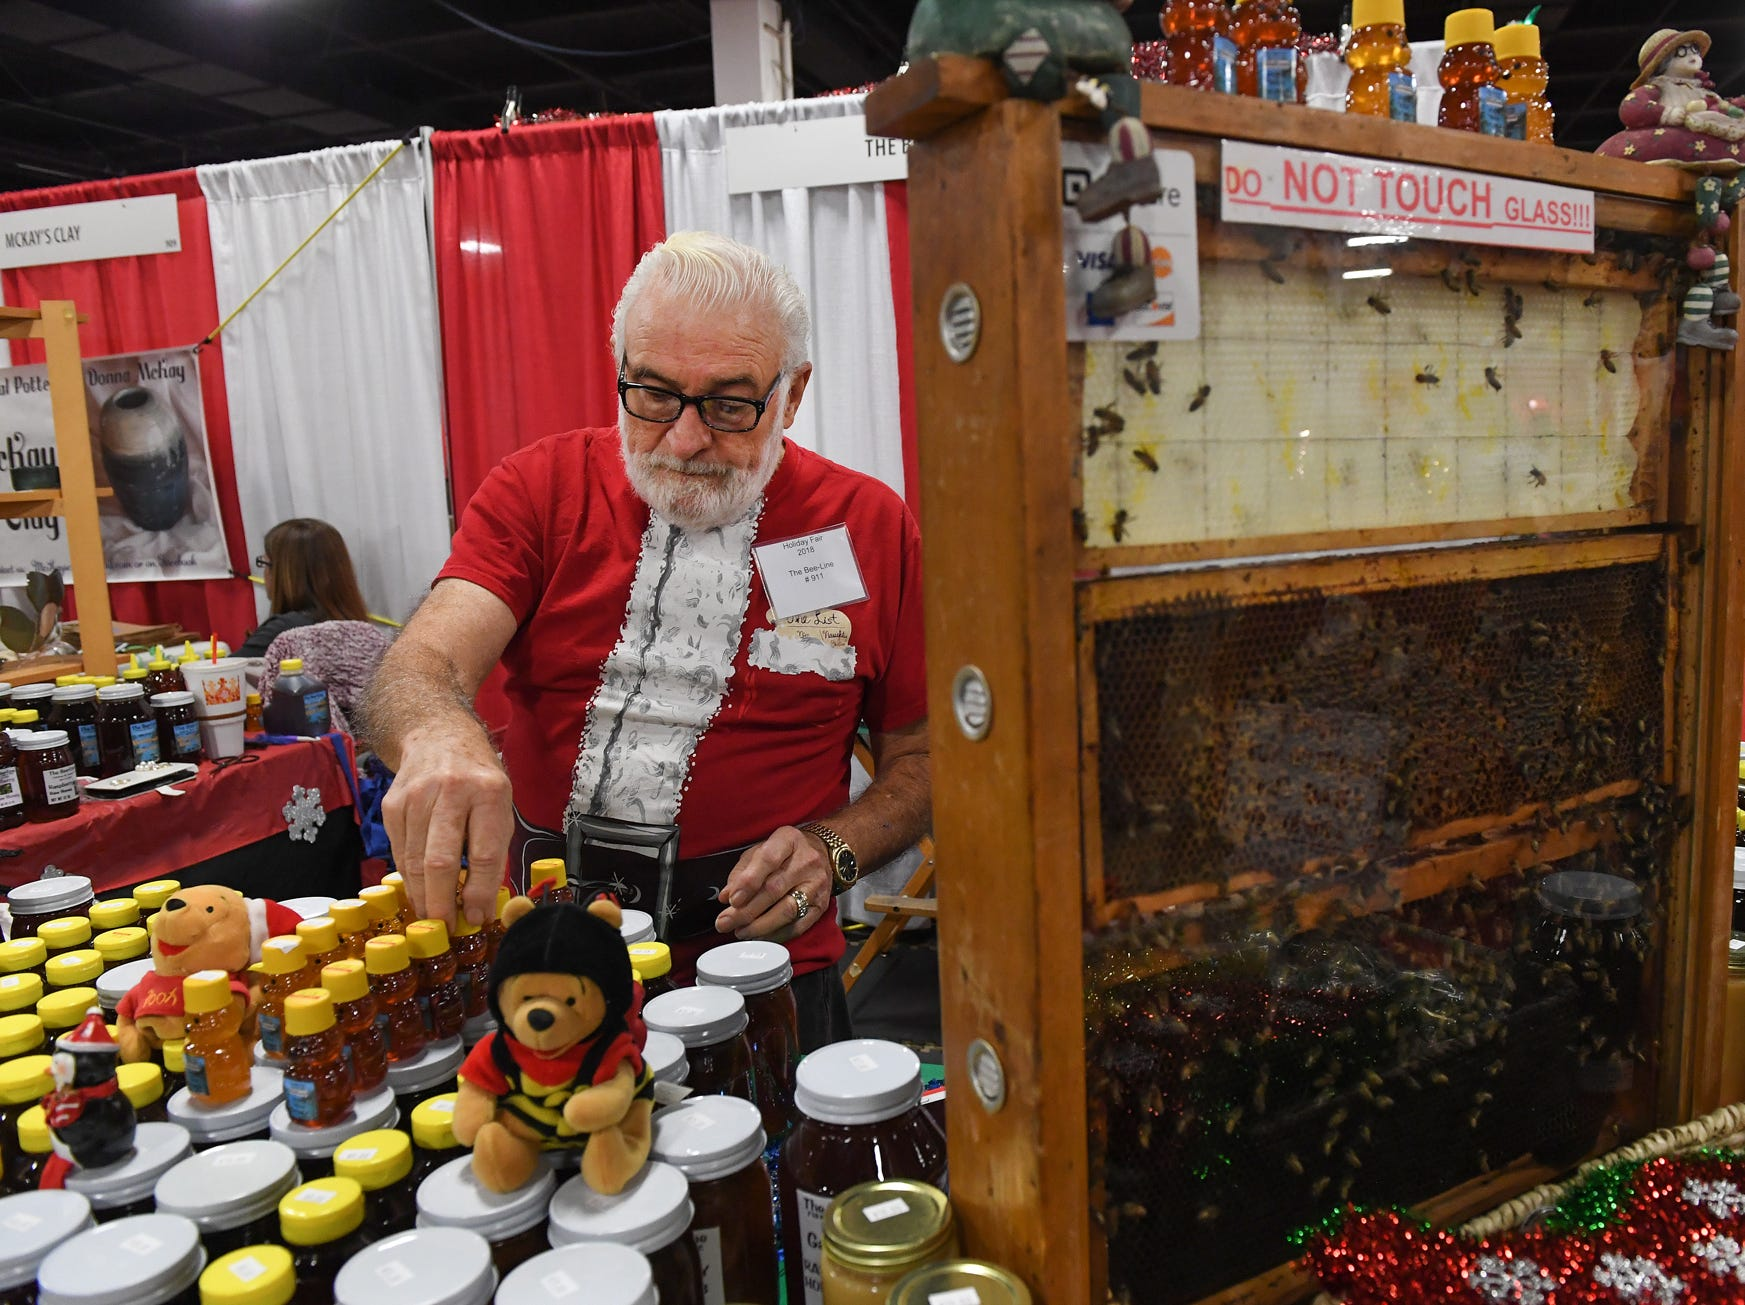 Beekeeper Lewis Mahaffey organizes honey in his booth during the 48th annual Holiday Fair at the Greenville Convention Center Thursday, November 29,  2018.